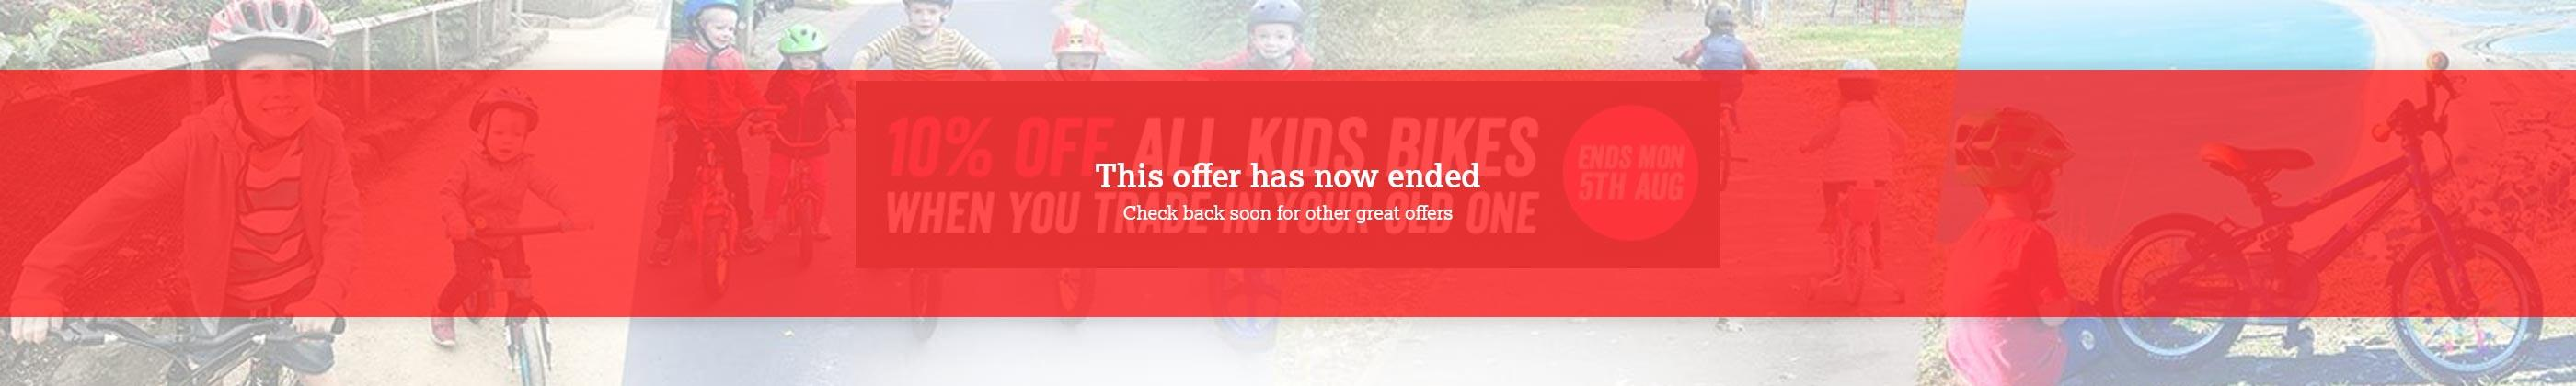 Our trade in promotion has now ended. Check back soon for other great offers